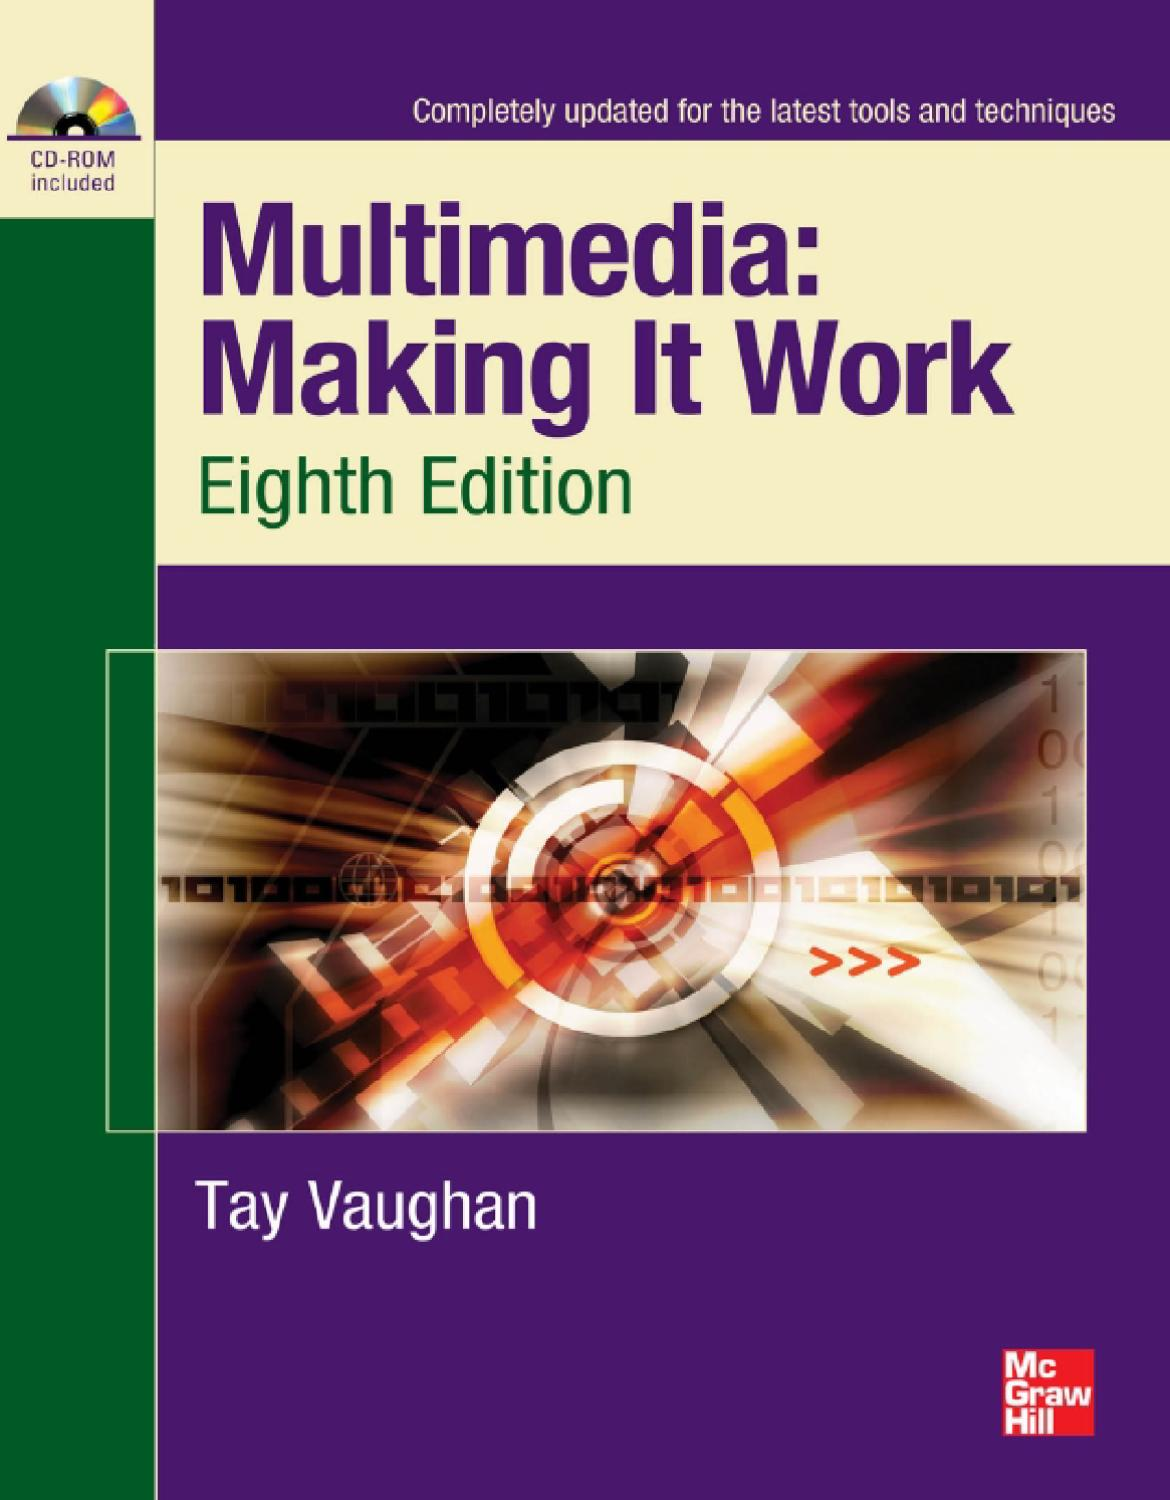 Multimedia making it work eighth edition by victor gutierrez issuu fandeluxe Image collections